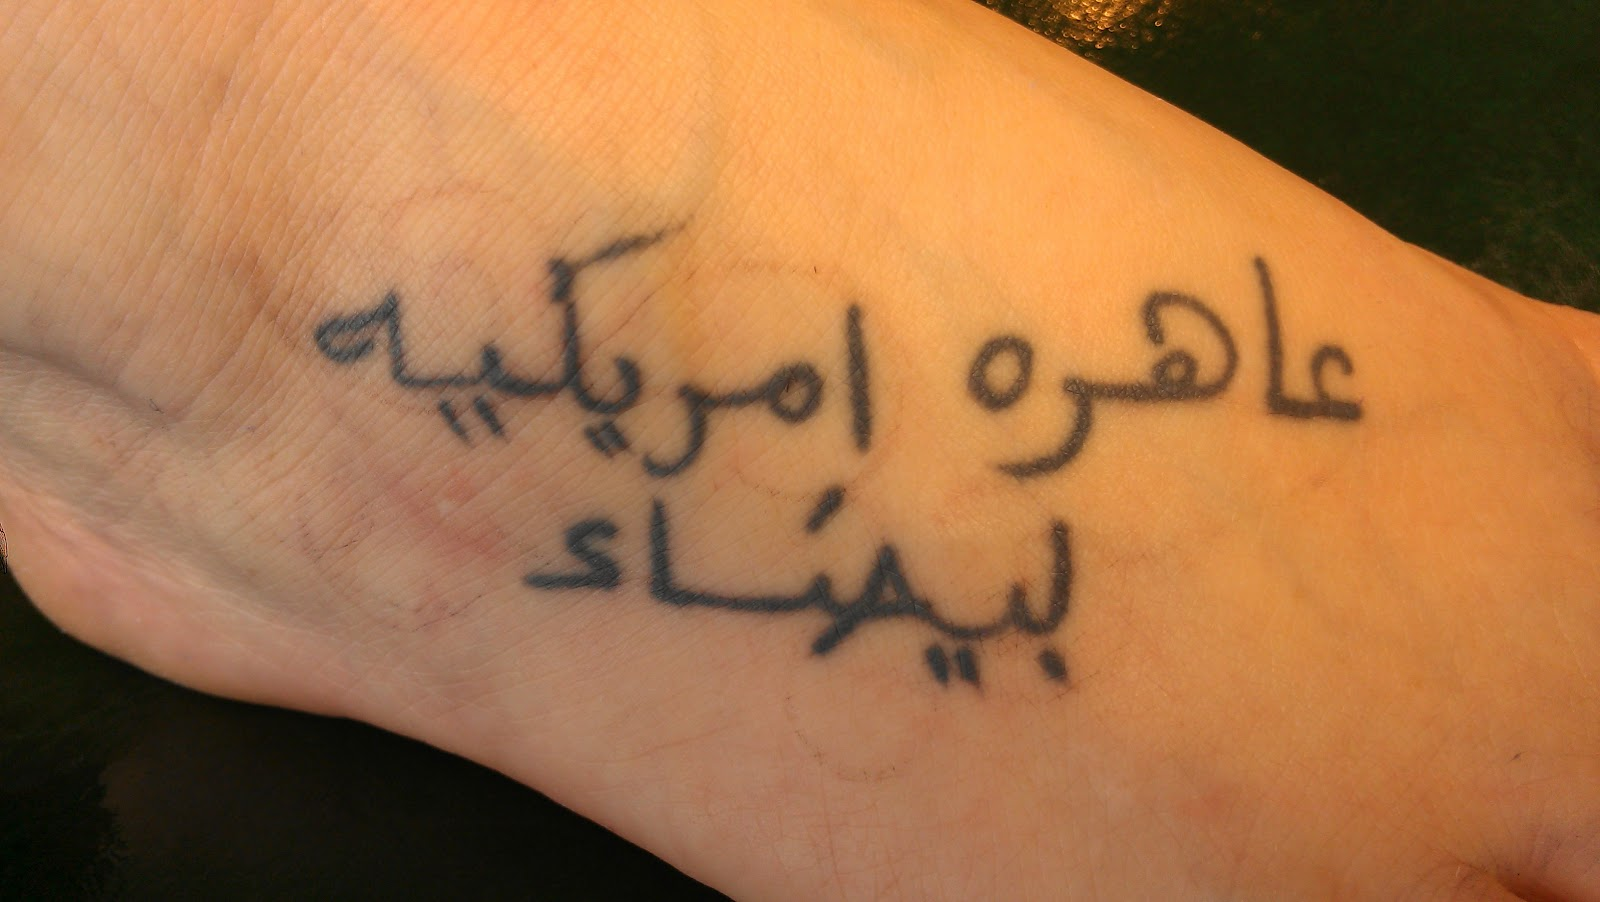 Funny Arabic Tattoos 5 Free Hd Wallpaper - Funnypicture.org